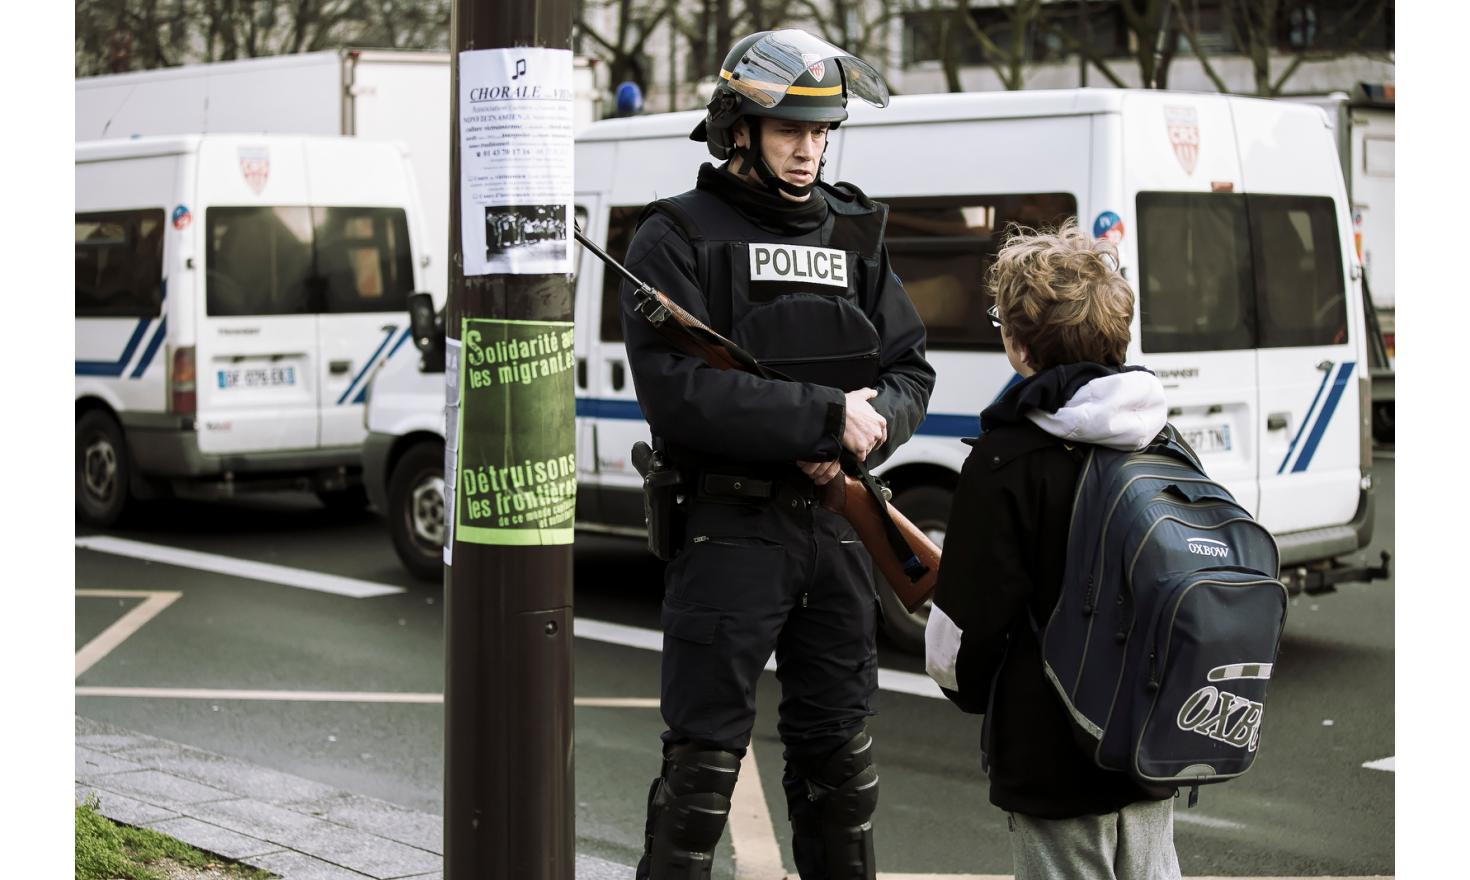 During the Hypercacher hostage-taking, cours de Vincennes, january 9th